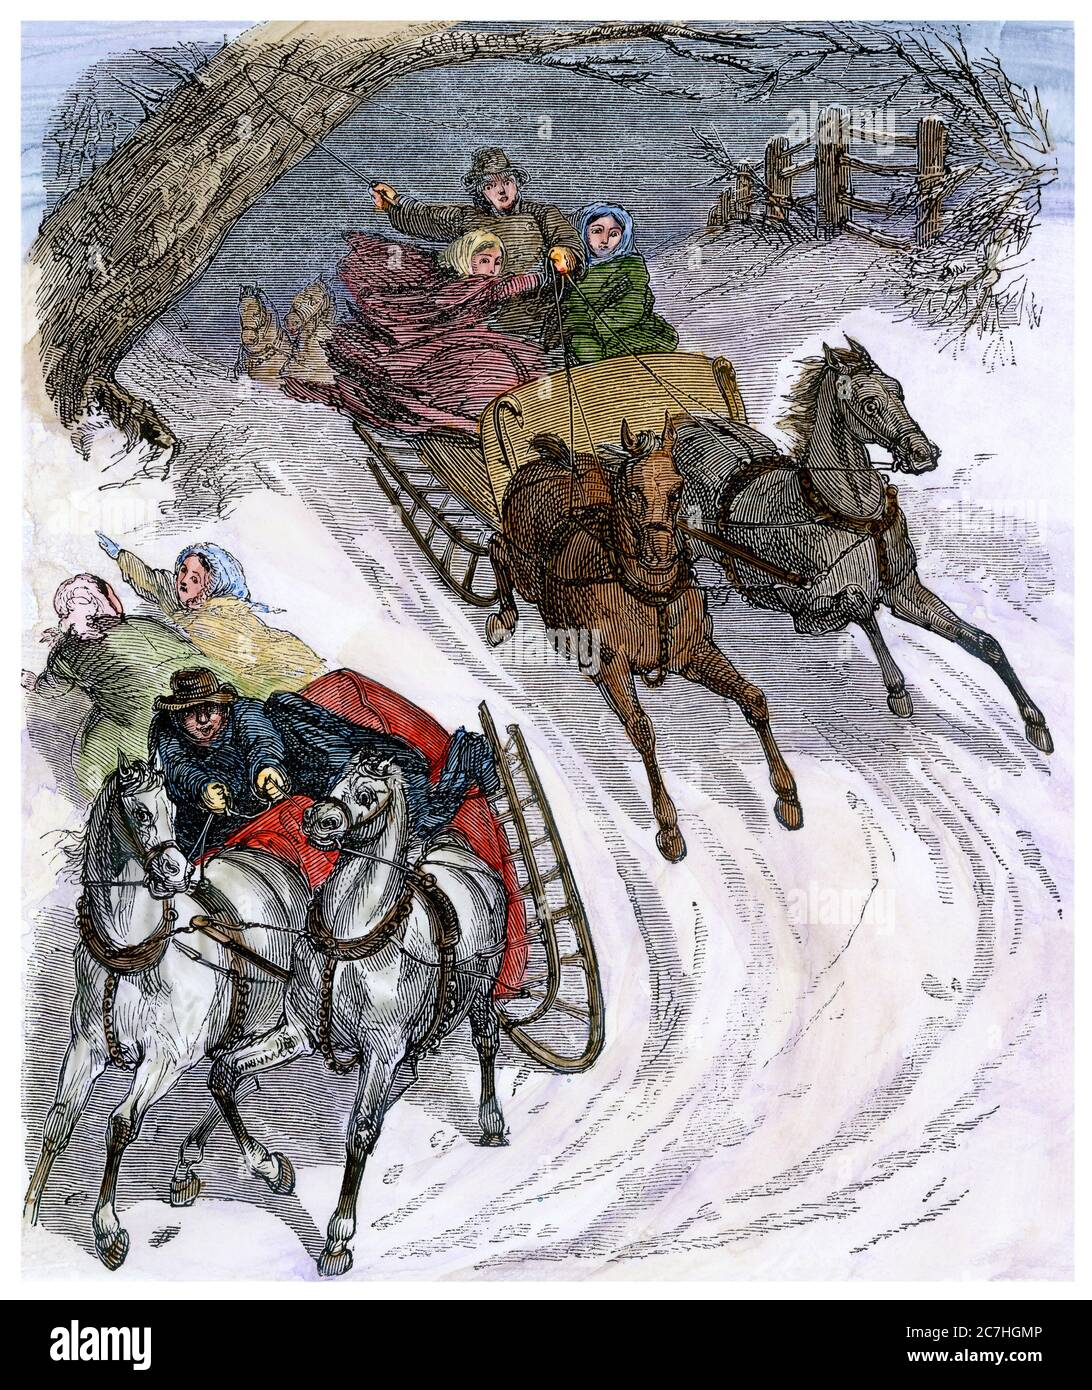 Sleighs racing on a snowy hillside, 1800s. Hand-colored woodcut Stock Photo